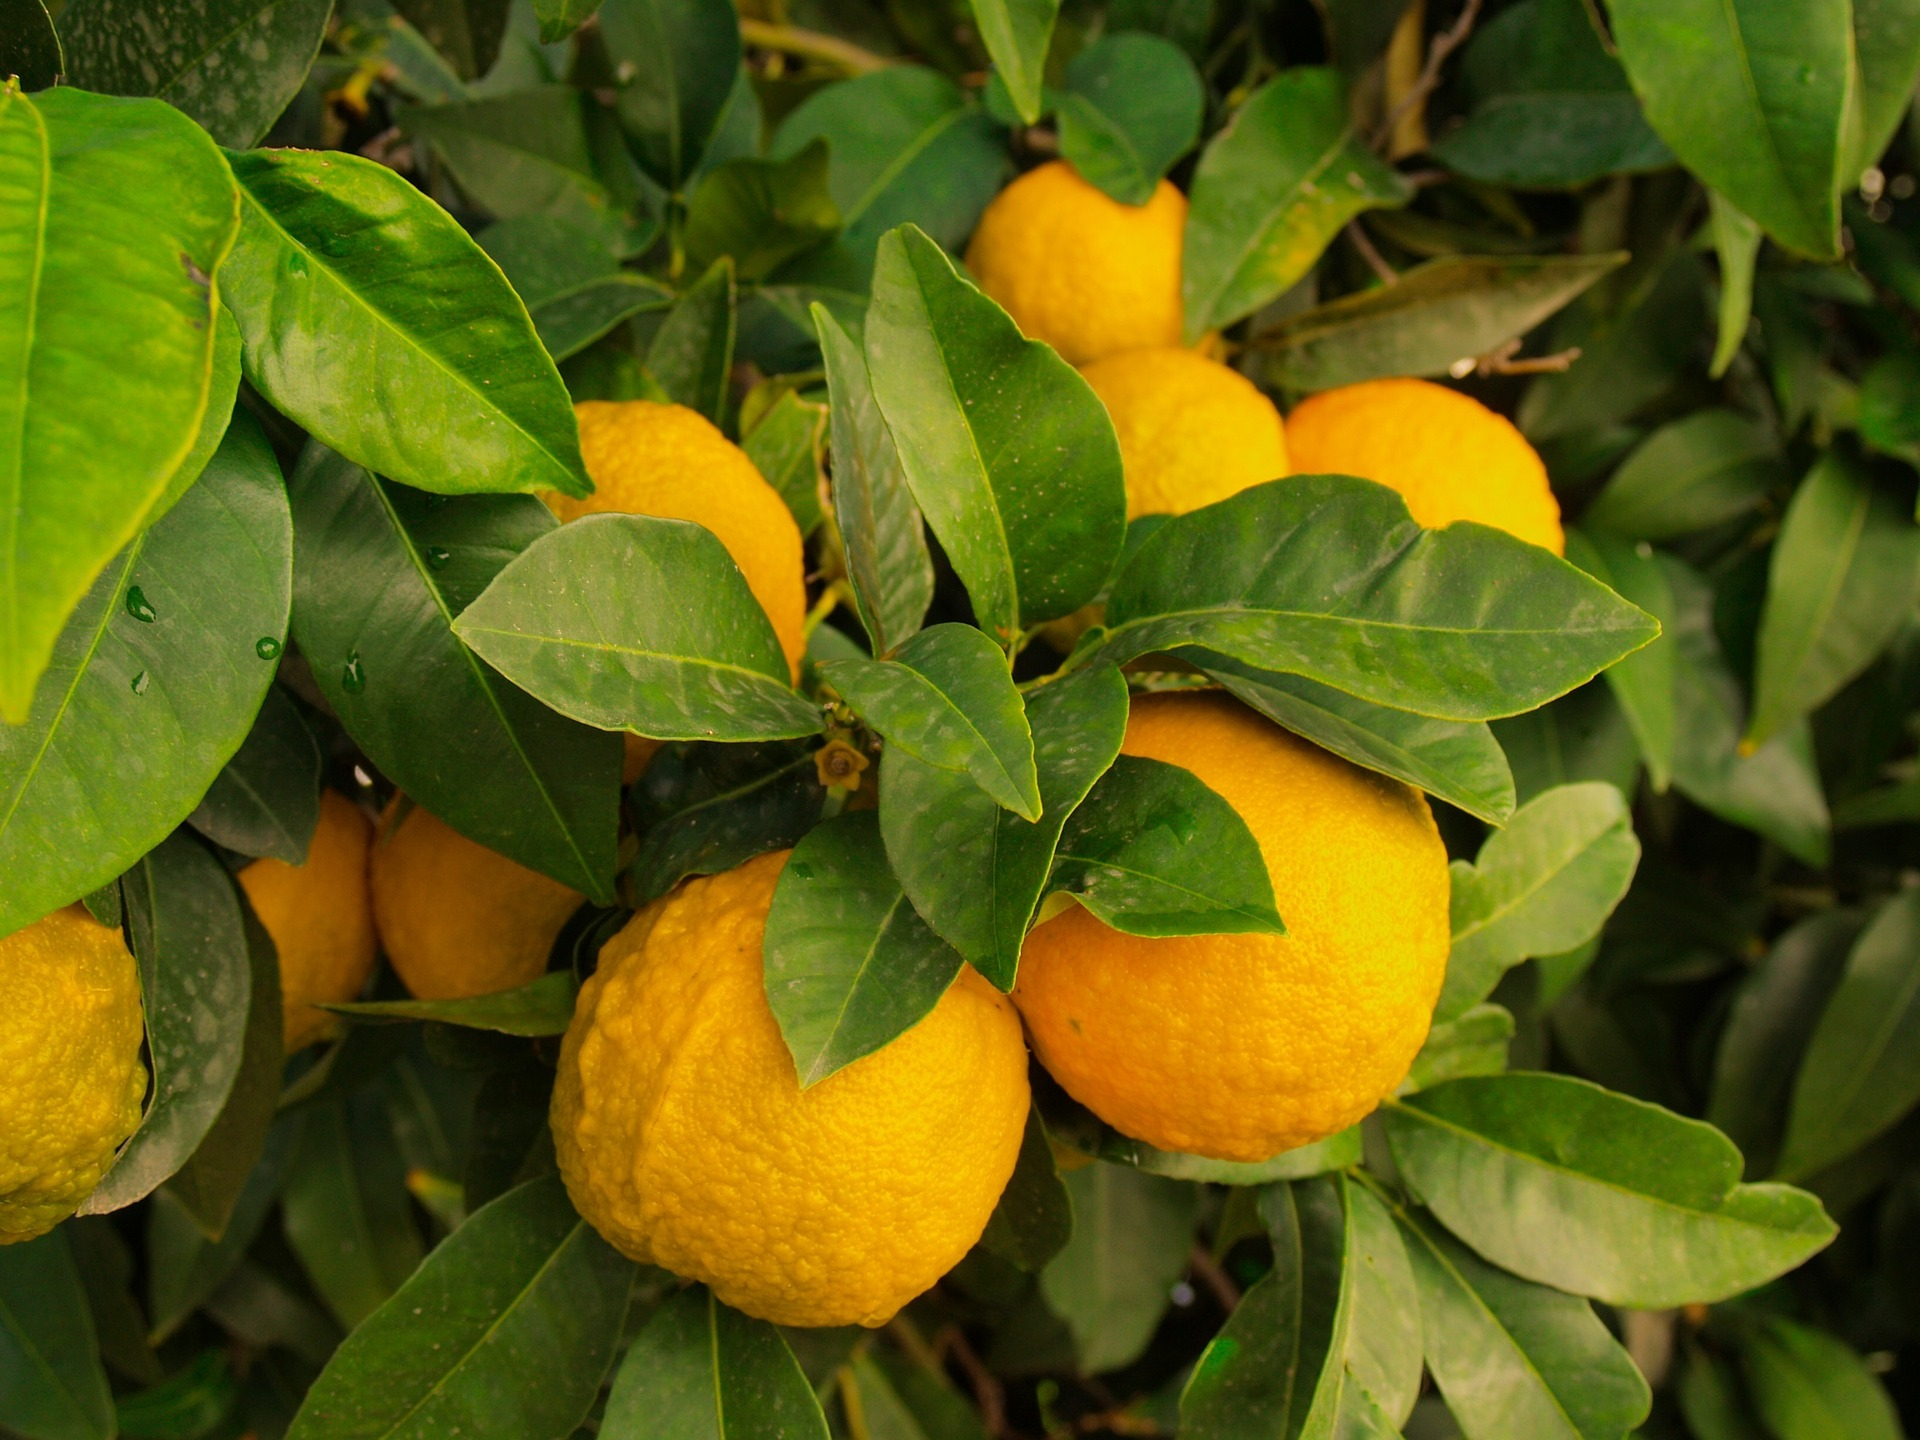 close up of lemon tree